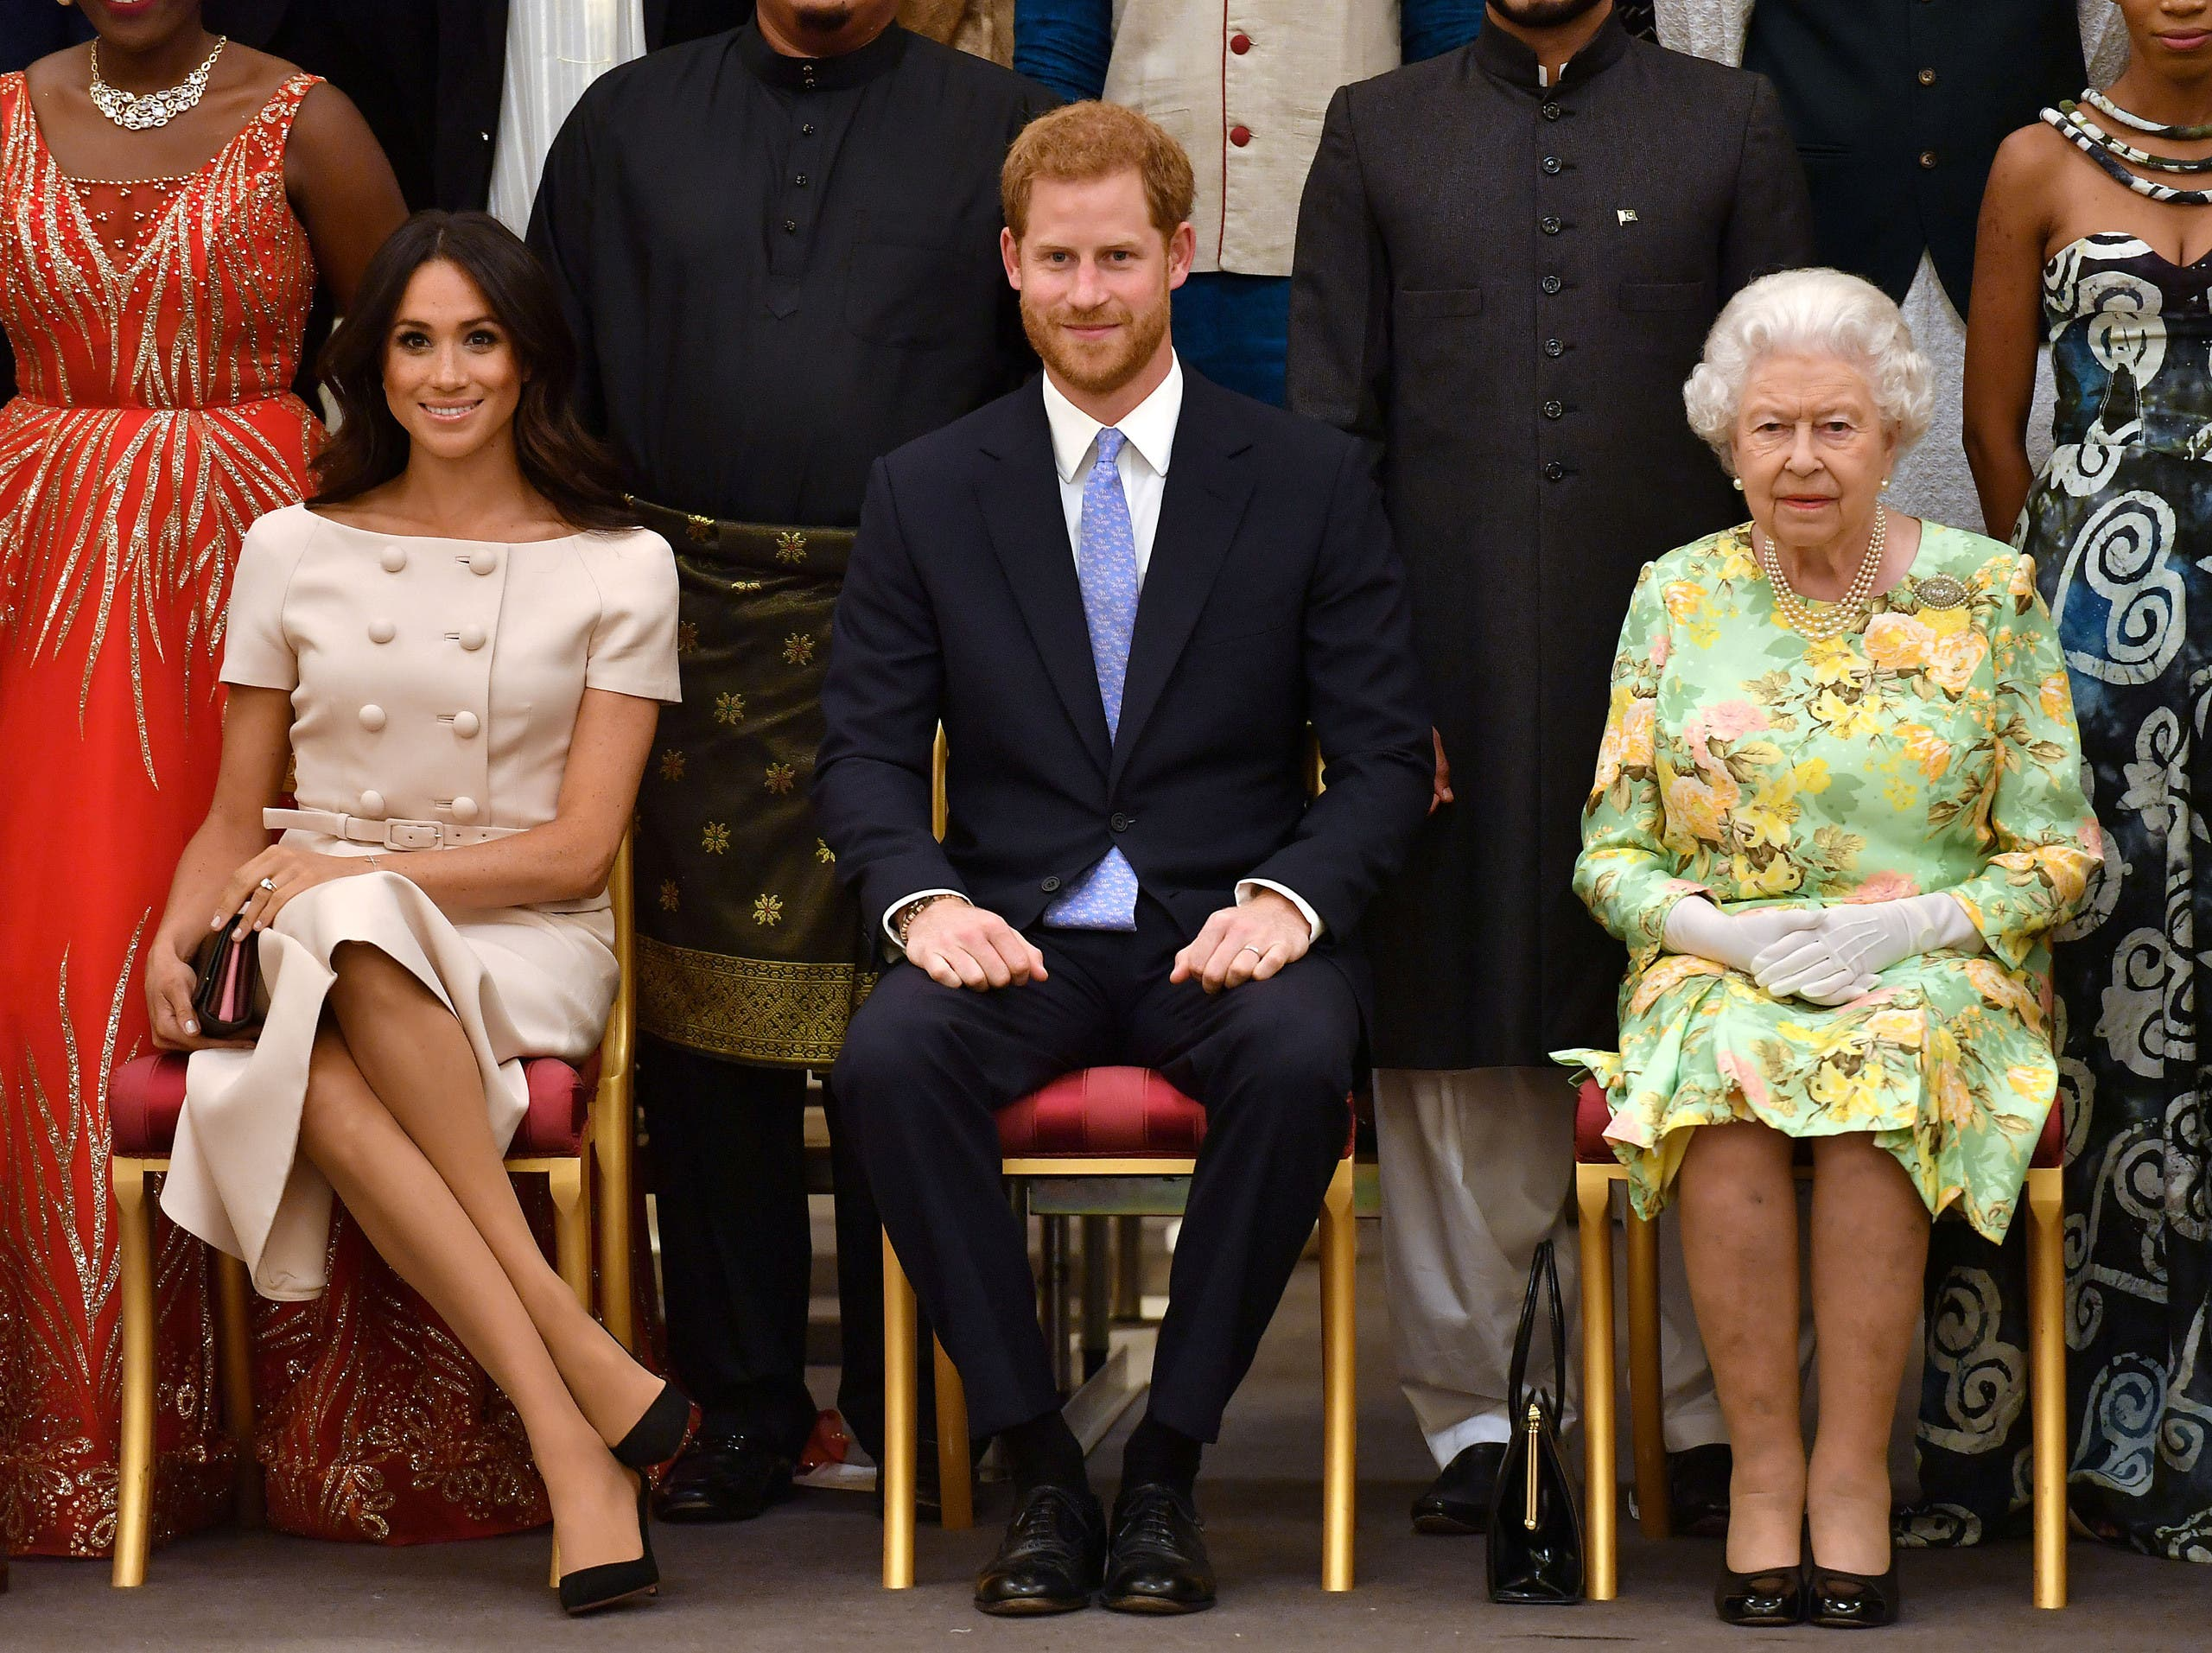 Britain's Queen Elizabeth, Prince Harry and Meghan, the Duchess of Sussex pose for a picture with some of Queen's Young Leaders at a Buckingham Palace reception in London on June 26, 2018. (Reuters)